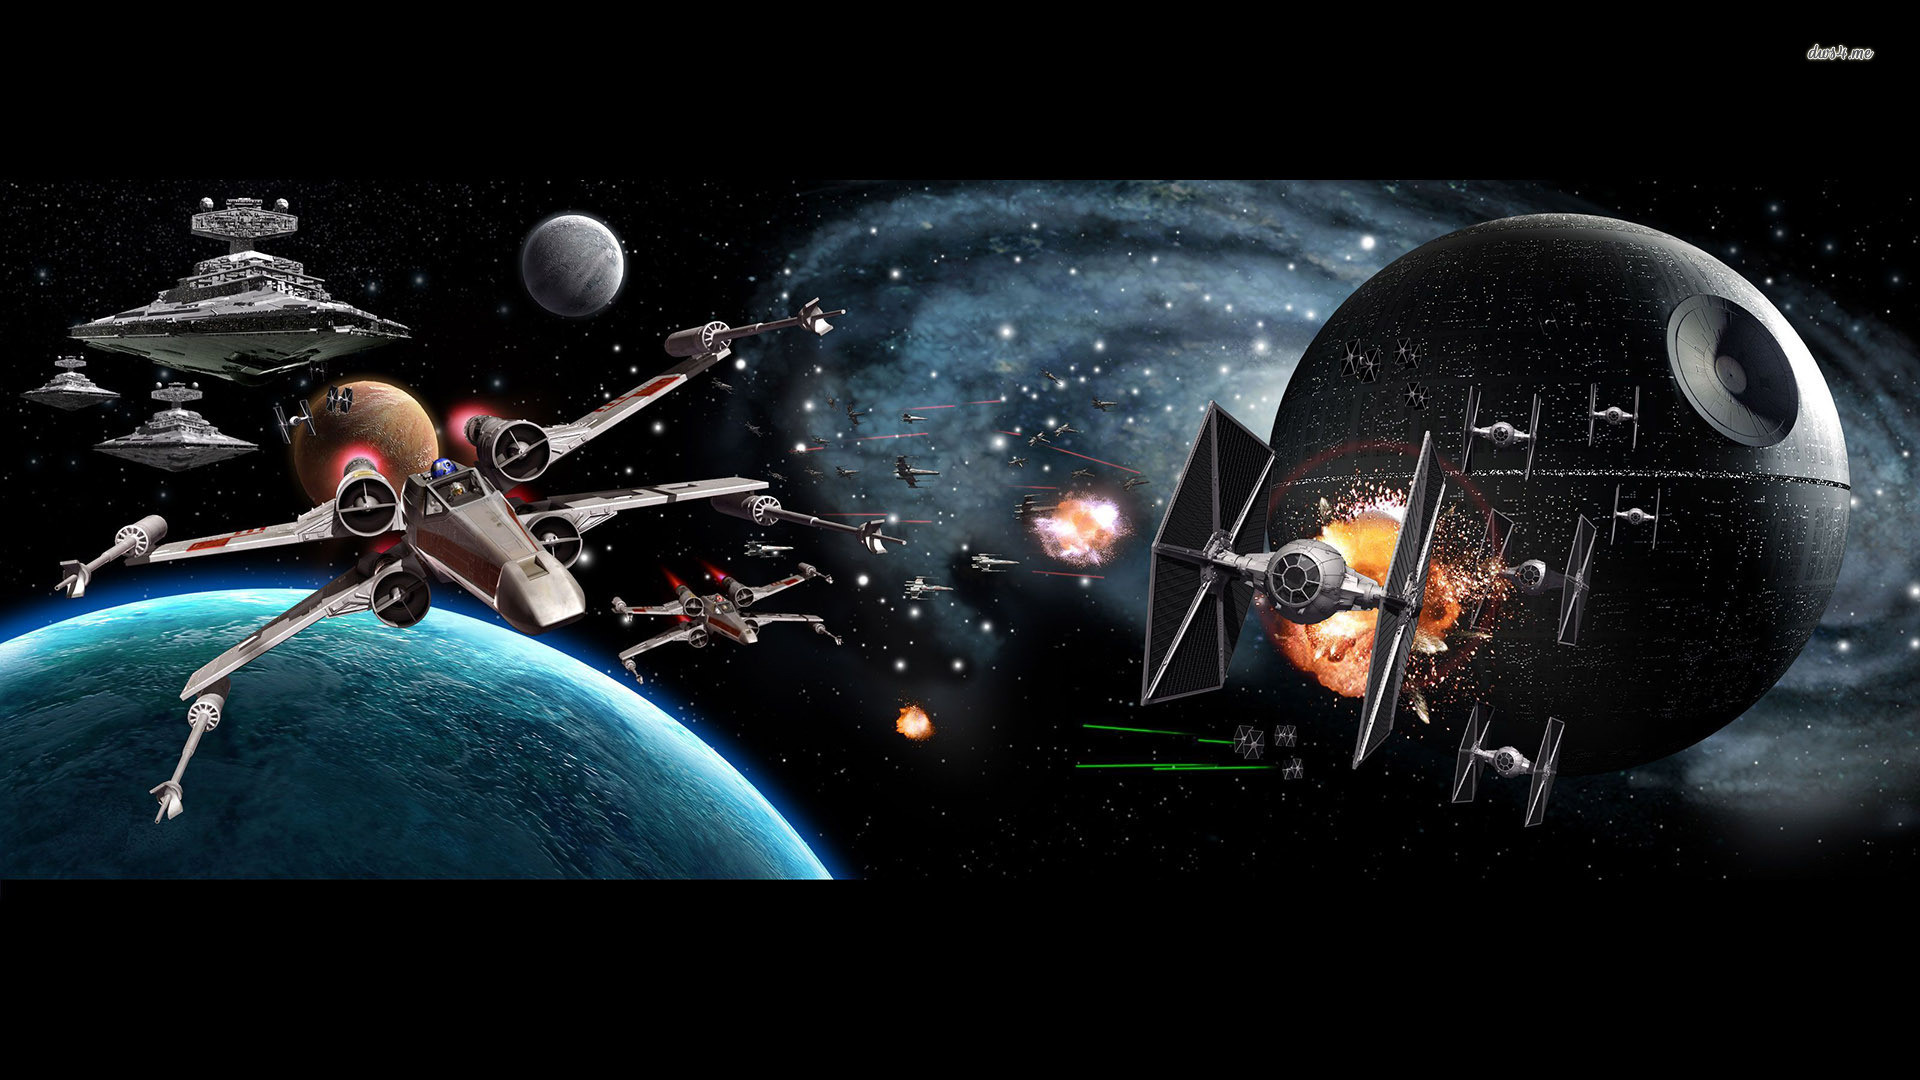 Star Wars Wallpaper 1680x1050 64 Pictures